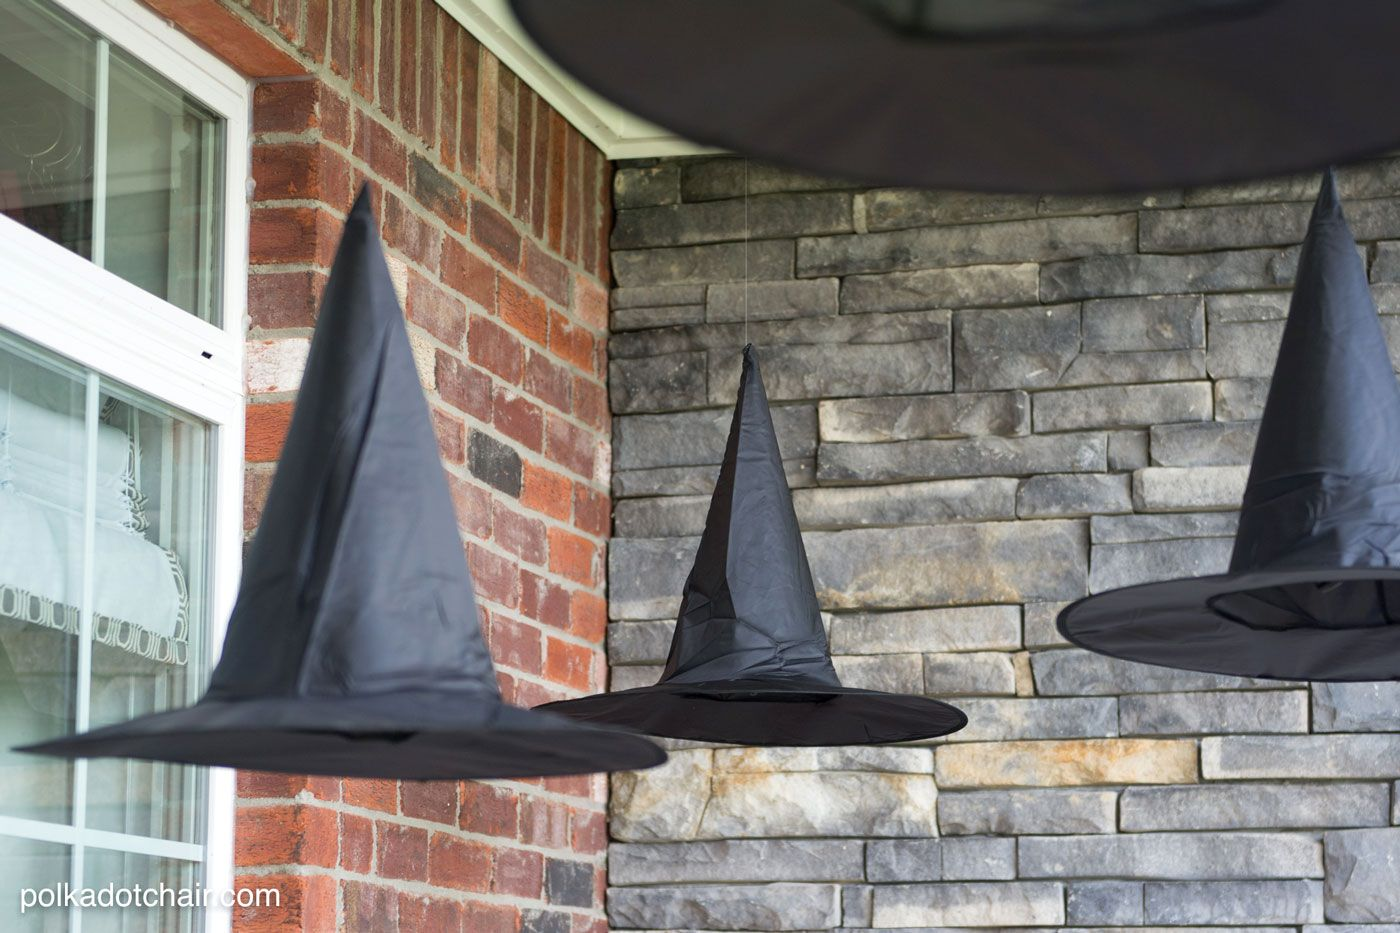 Diy Floating Witch Hat Luminaries Polka Dot Chair Halloween Inspiration Halloween Porch Halloween Witch Decorations